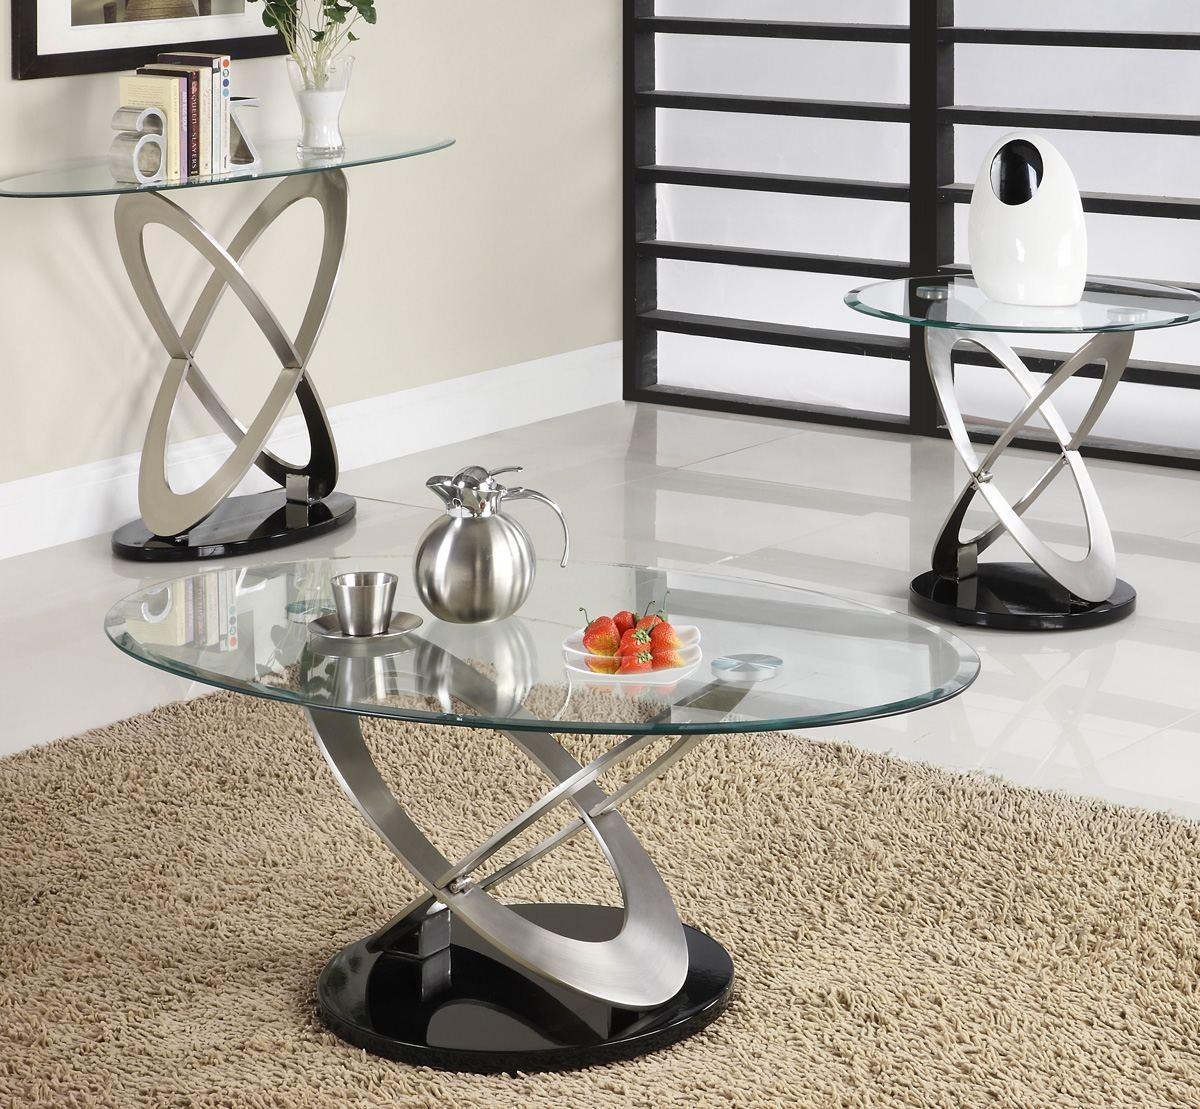 Homelegance Firth Oval Glass Sofa Table In Chrome & Black Metal Regarding Metal Glass Sofa Tables (Image 9 of 22)